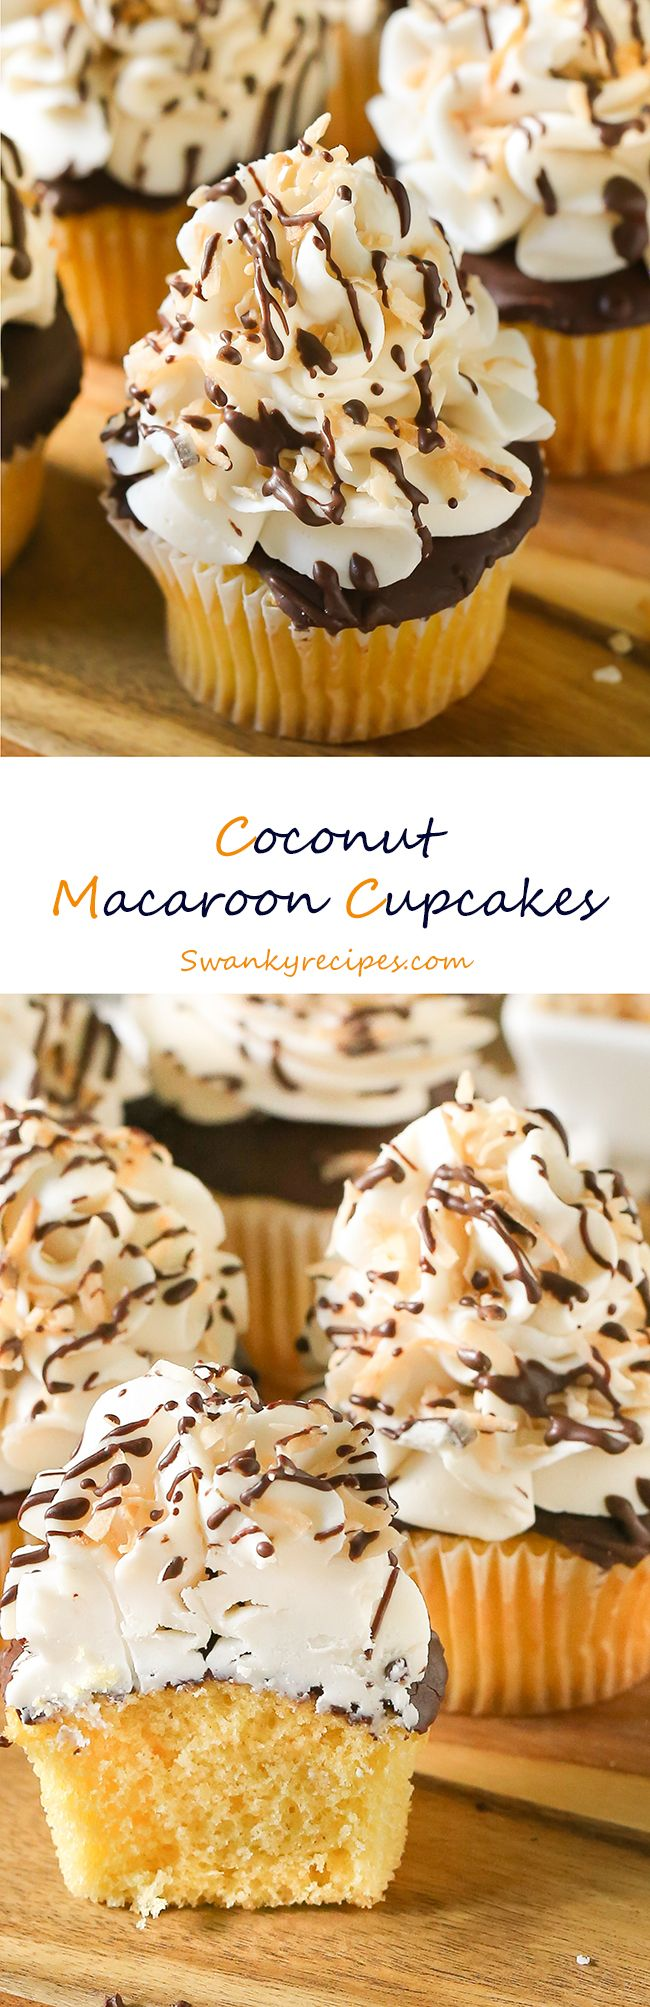 Coconut Macaroon cupcakes - Celebrate the arrival of spring holidays with  moist and flavorful cupcakes made with @SPLENDA Naturals Stevia Sweetener, dark chocolate, toasted coconut flakes and whipped cream. #ad #SplendaSweeties #SweetSwaps